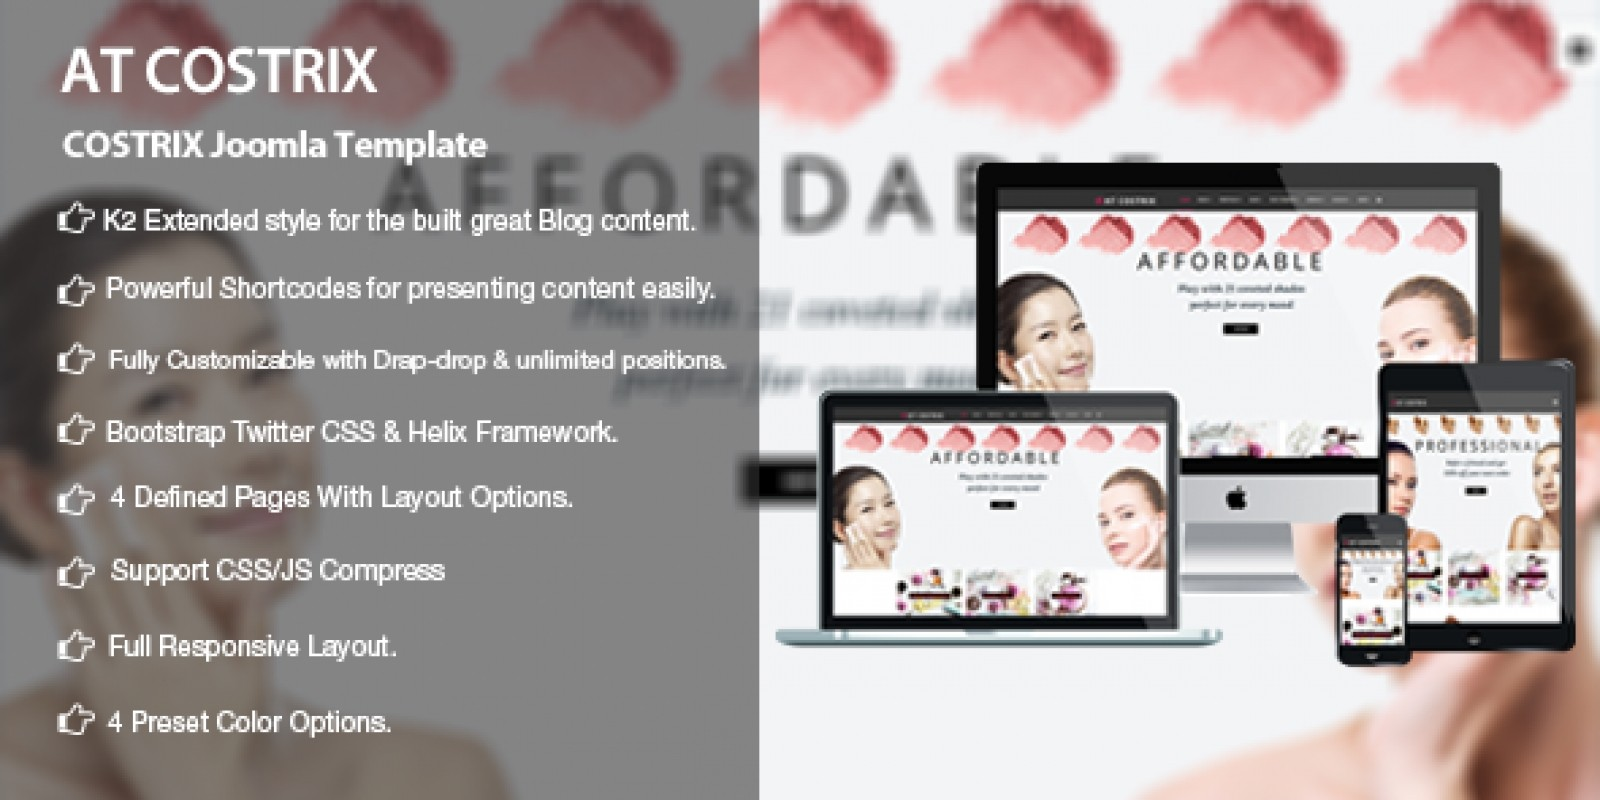 AT Costrix - Cosmetics Virtuemart Joomla Template